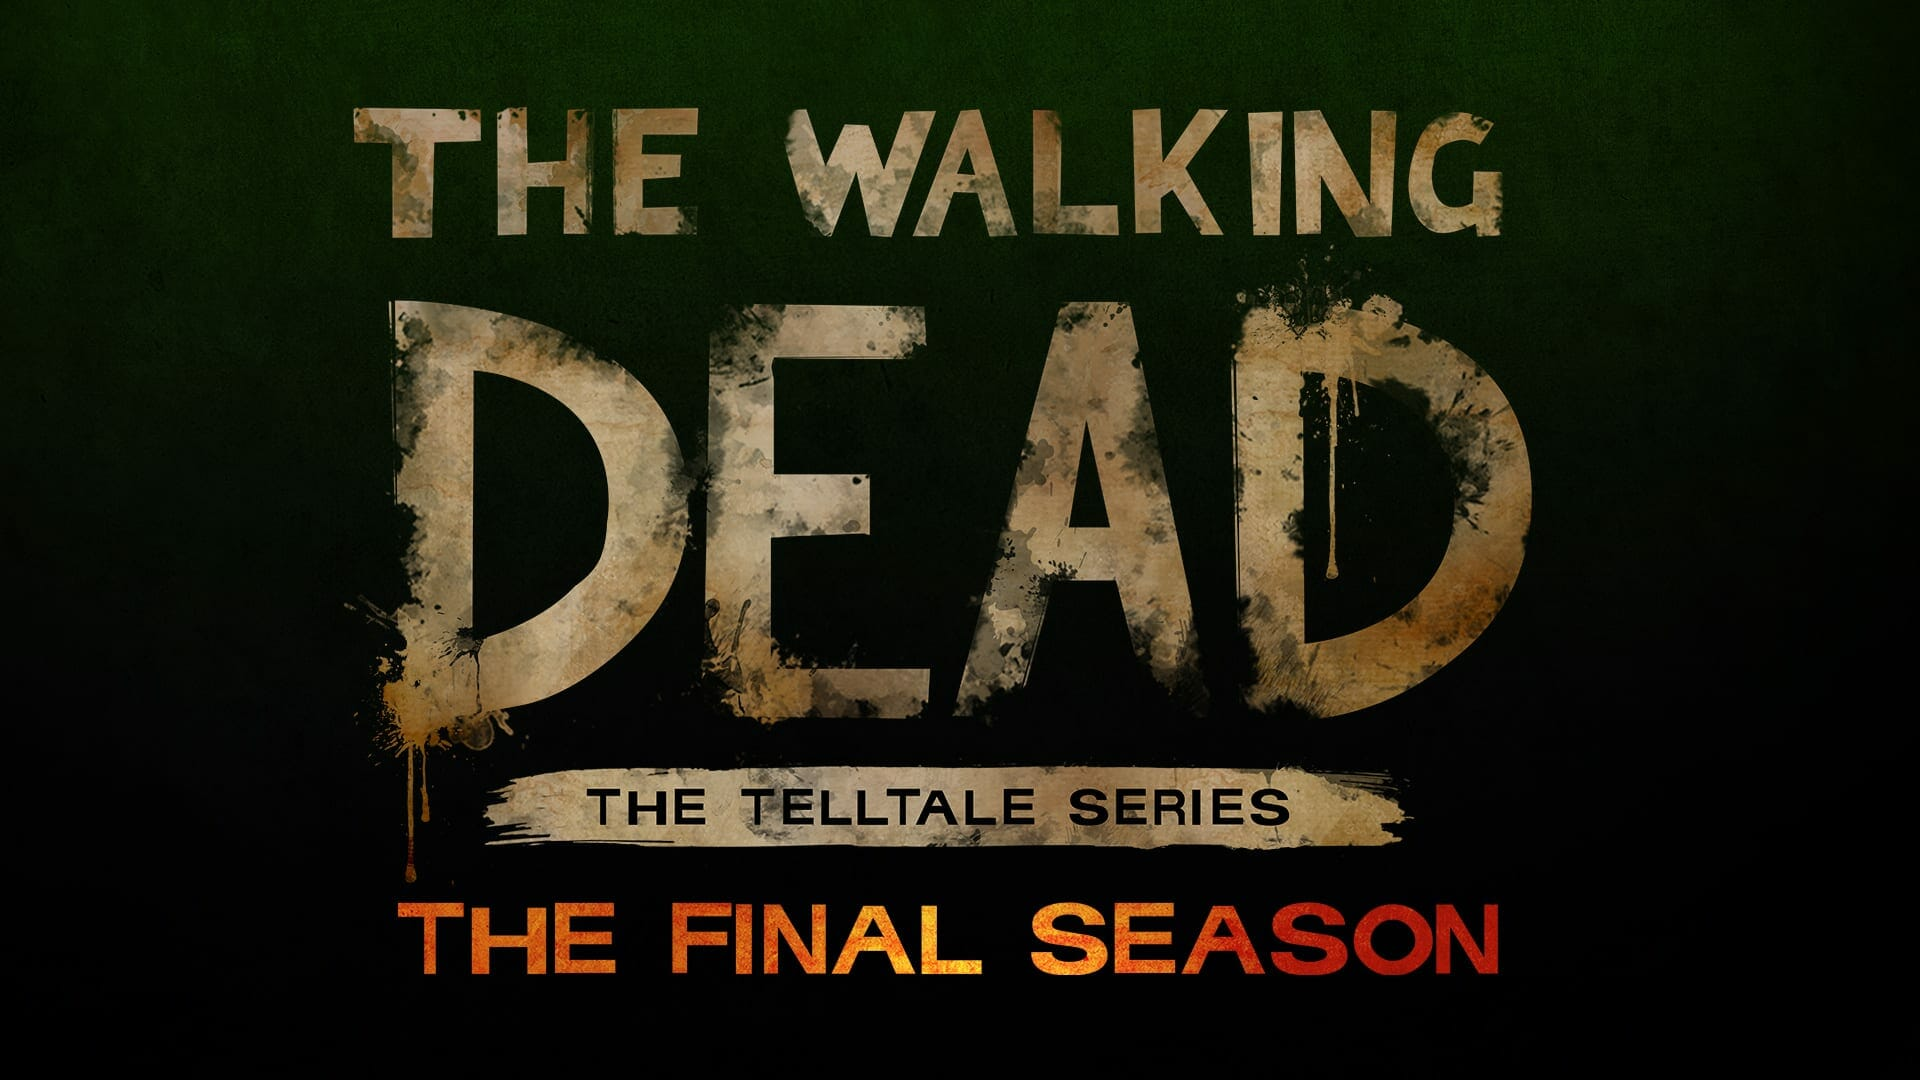 The Walking Dead The Final Season 4K